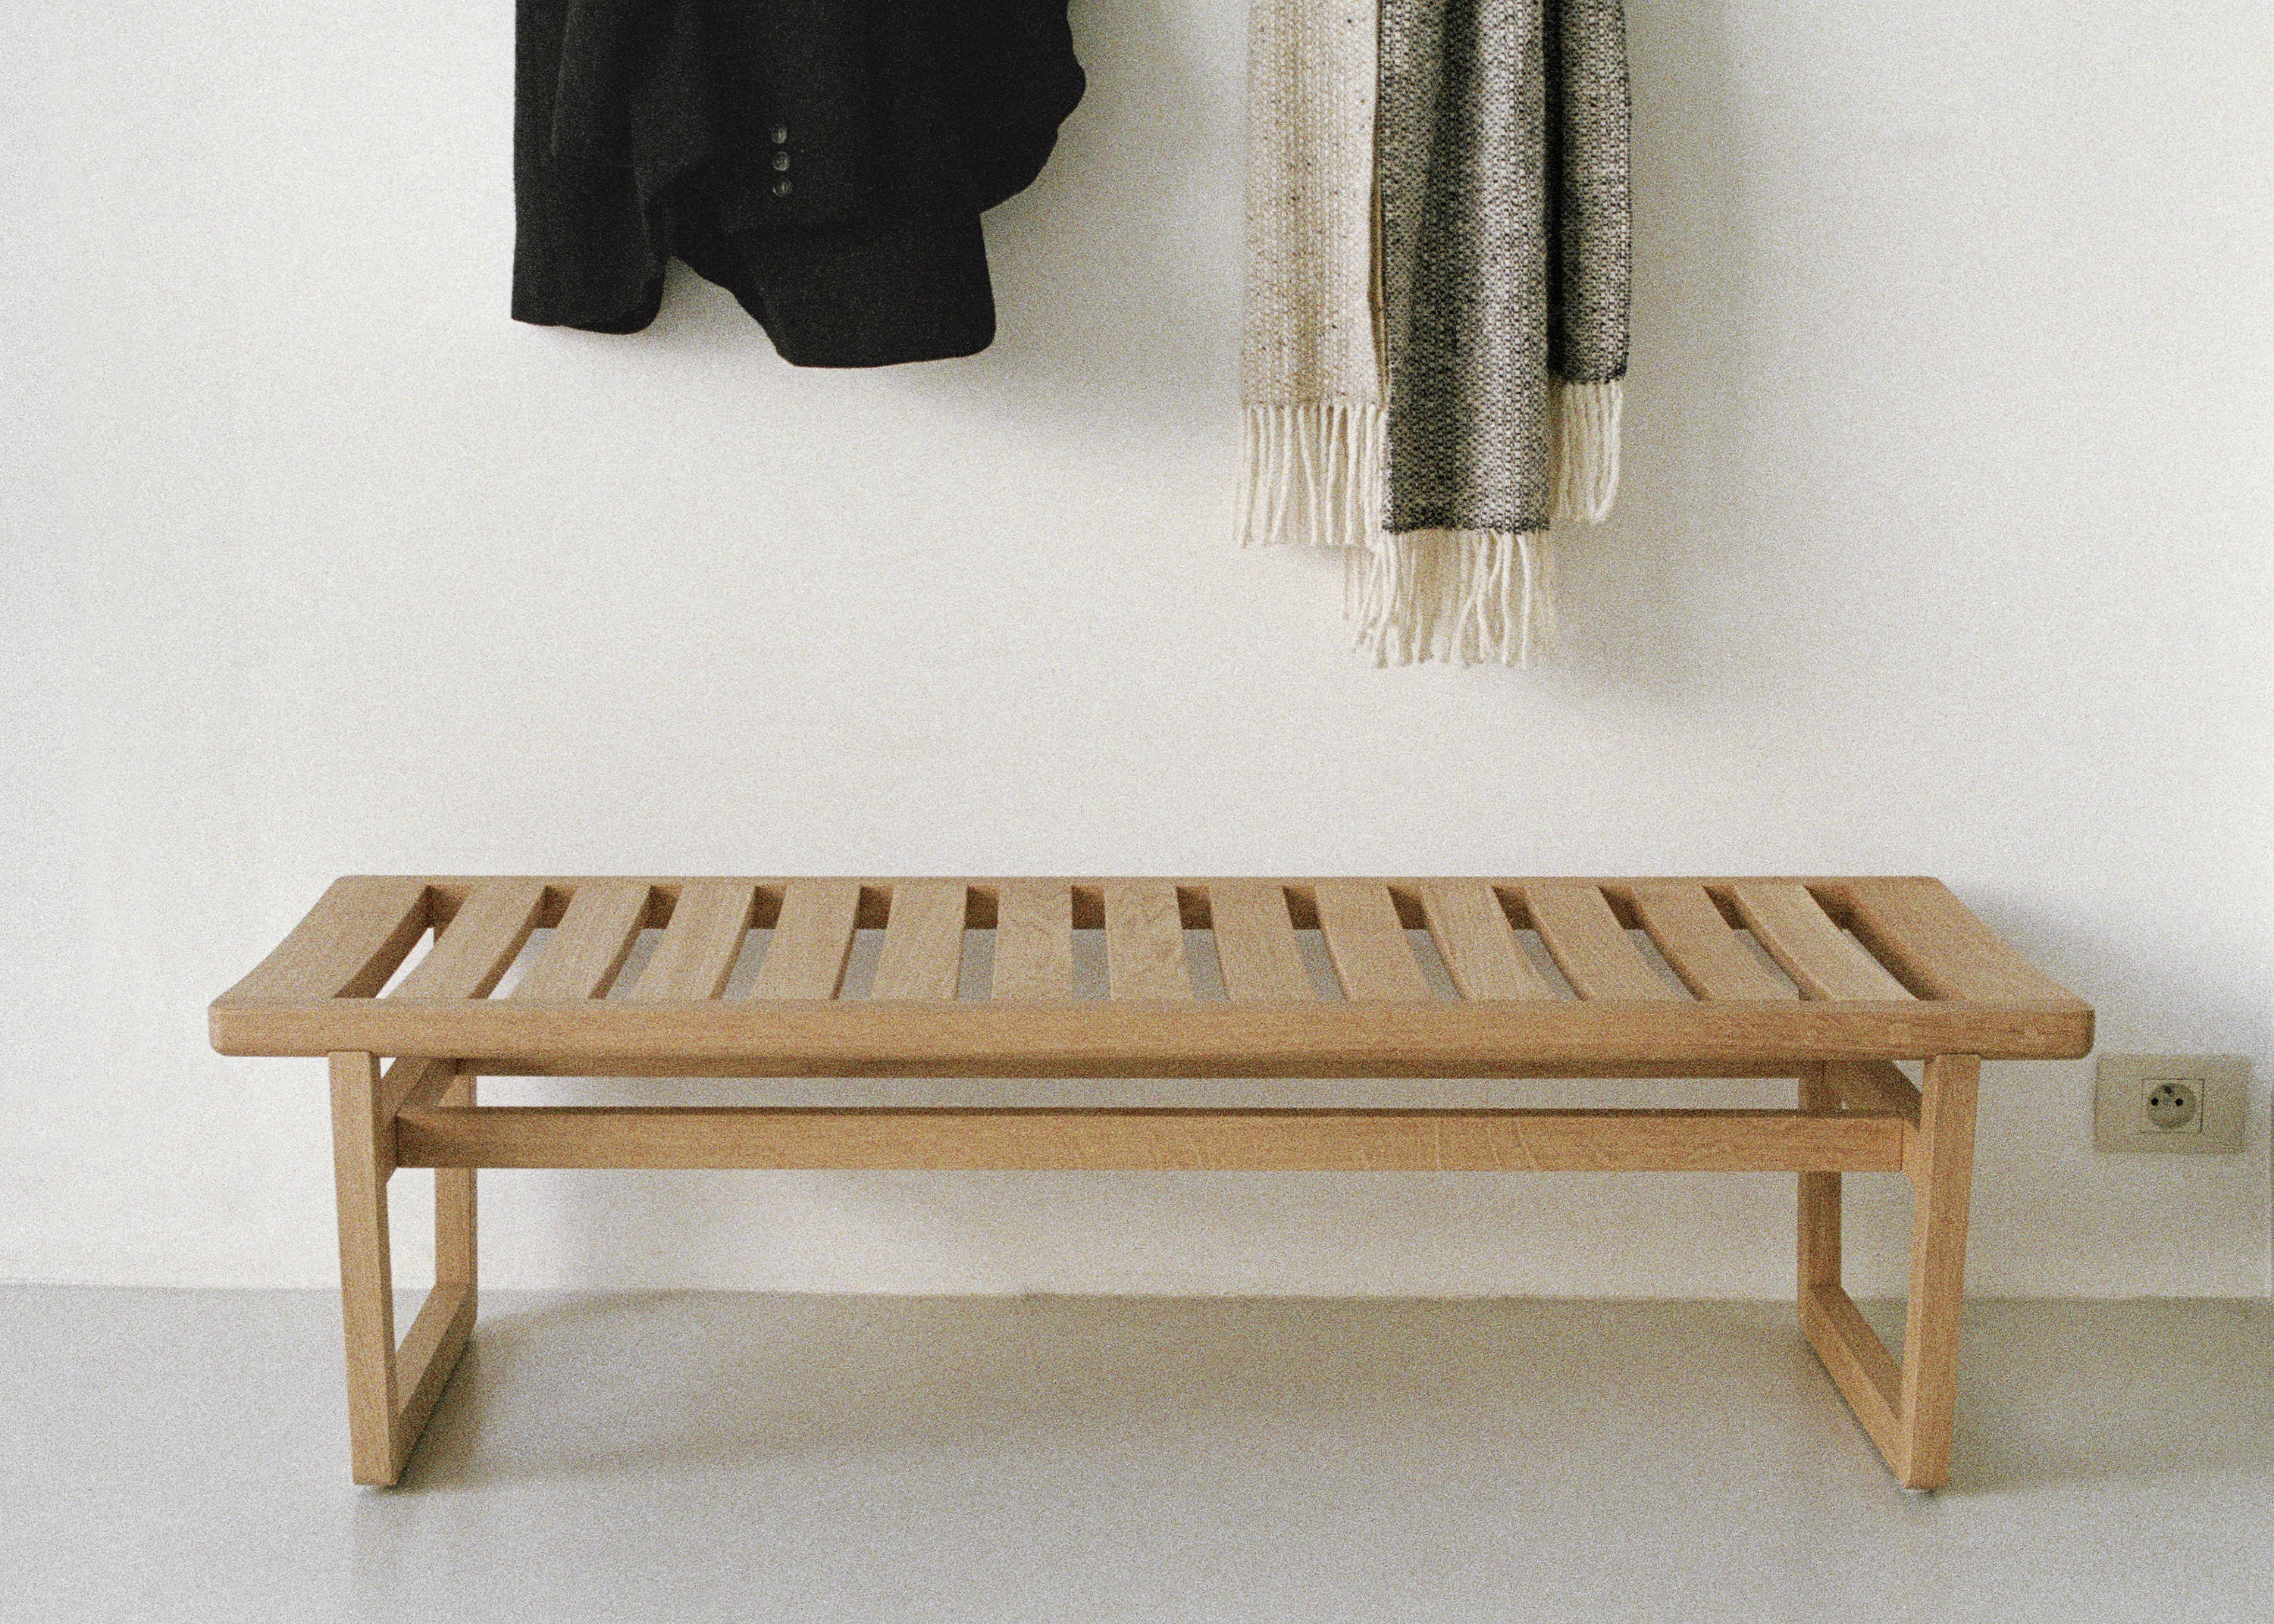 Fine Oak Bench Small Designer Furniture Architonic Creativecarmelina Interior Chair Design Creativecarmelinacom